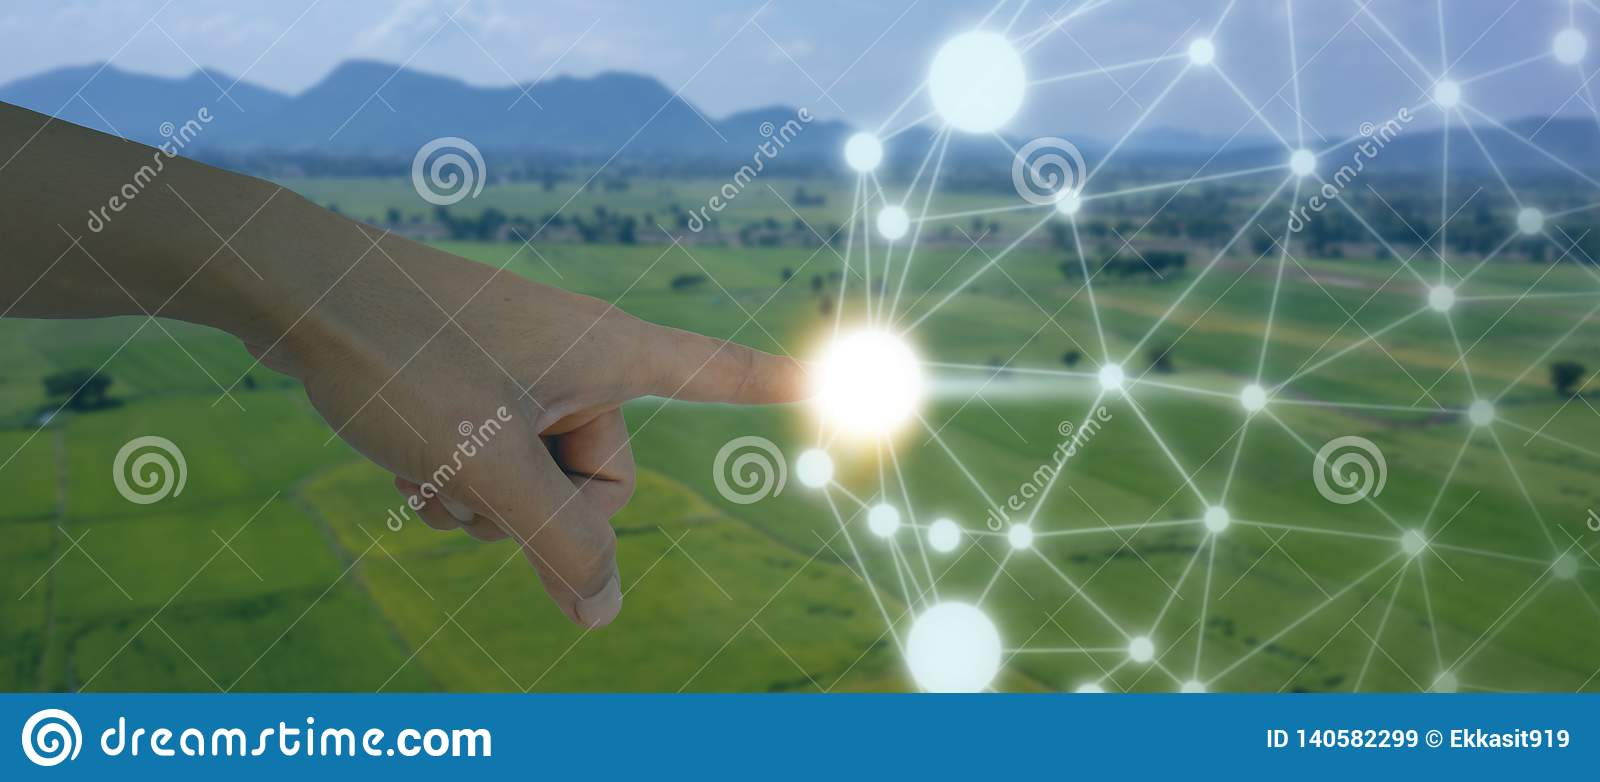 Iot, internet of things, agriculture concept, Smart Robotic artificial intelligence/ ai use for management , control , monitorin